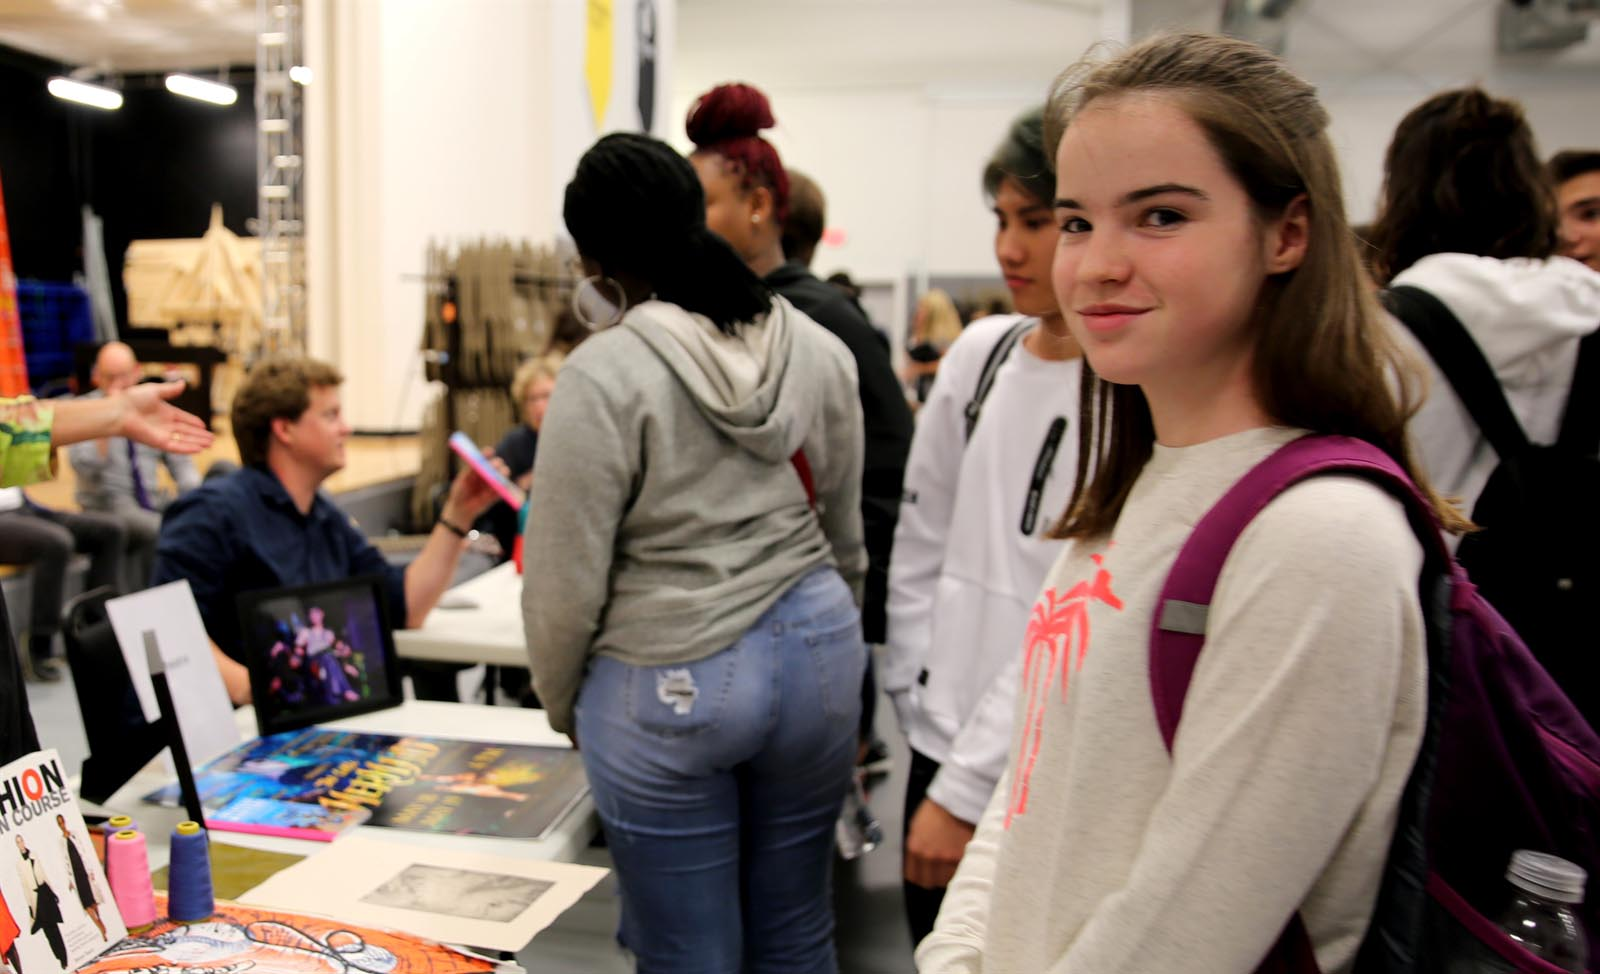 From rock-climbing to fashion: Students attend Activities Fair